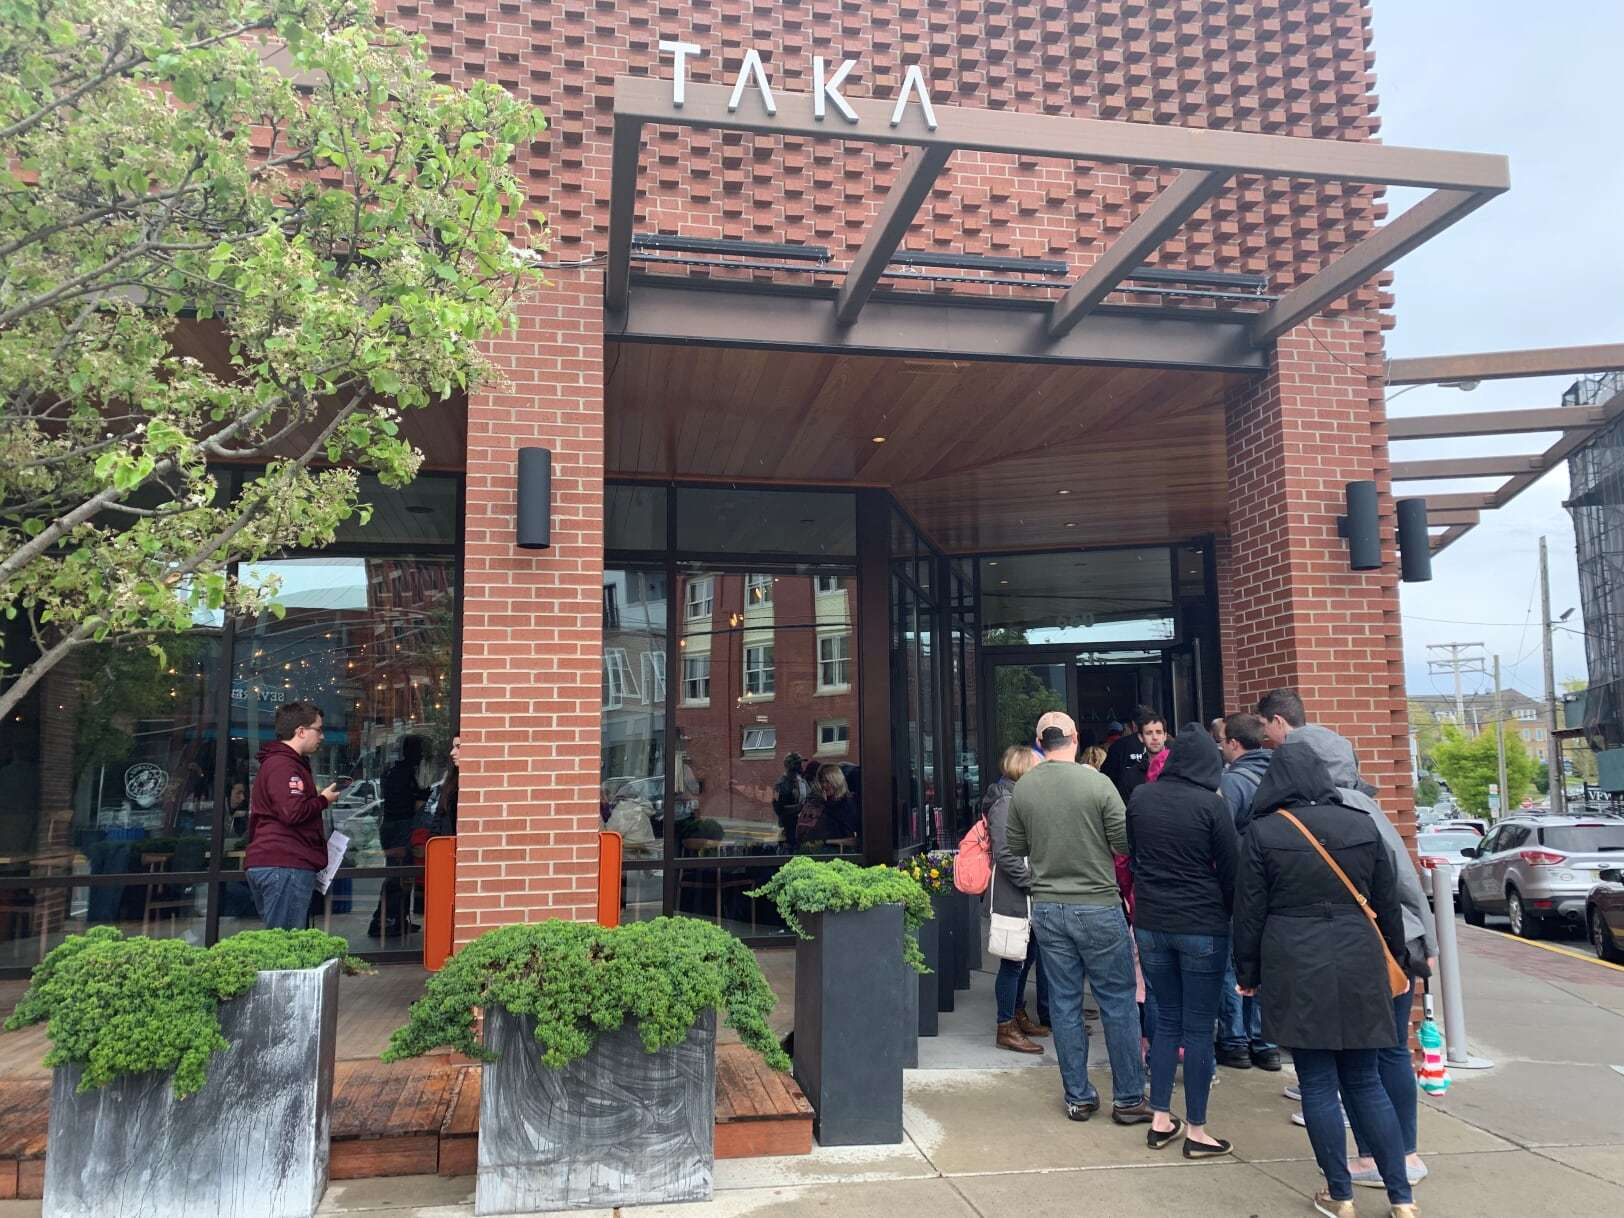 With a large ramp entrance and inviting, spacious interior, Taka is a model of accessibility with some of the best food in town!